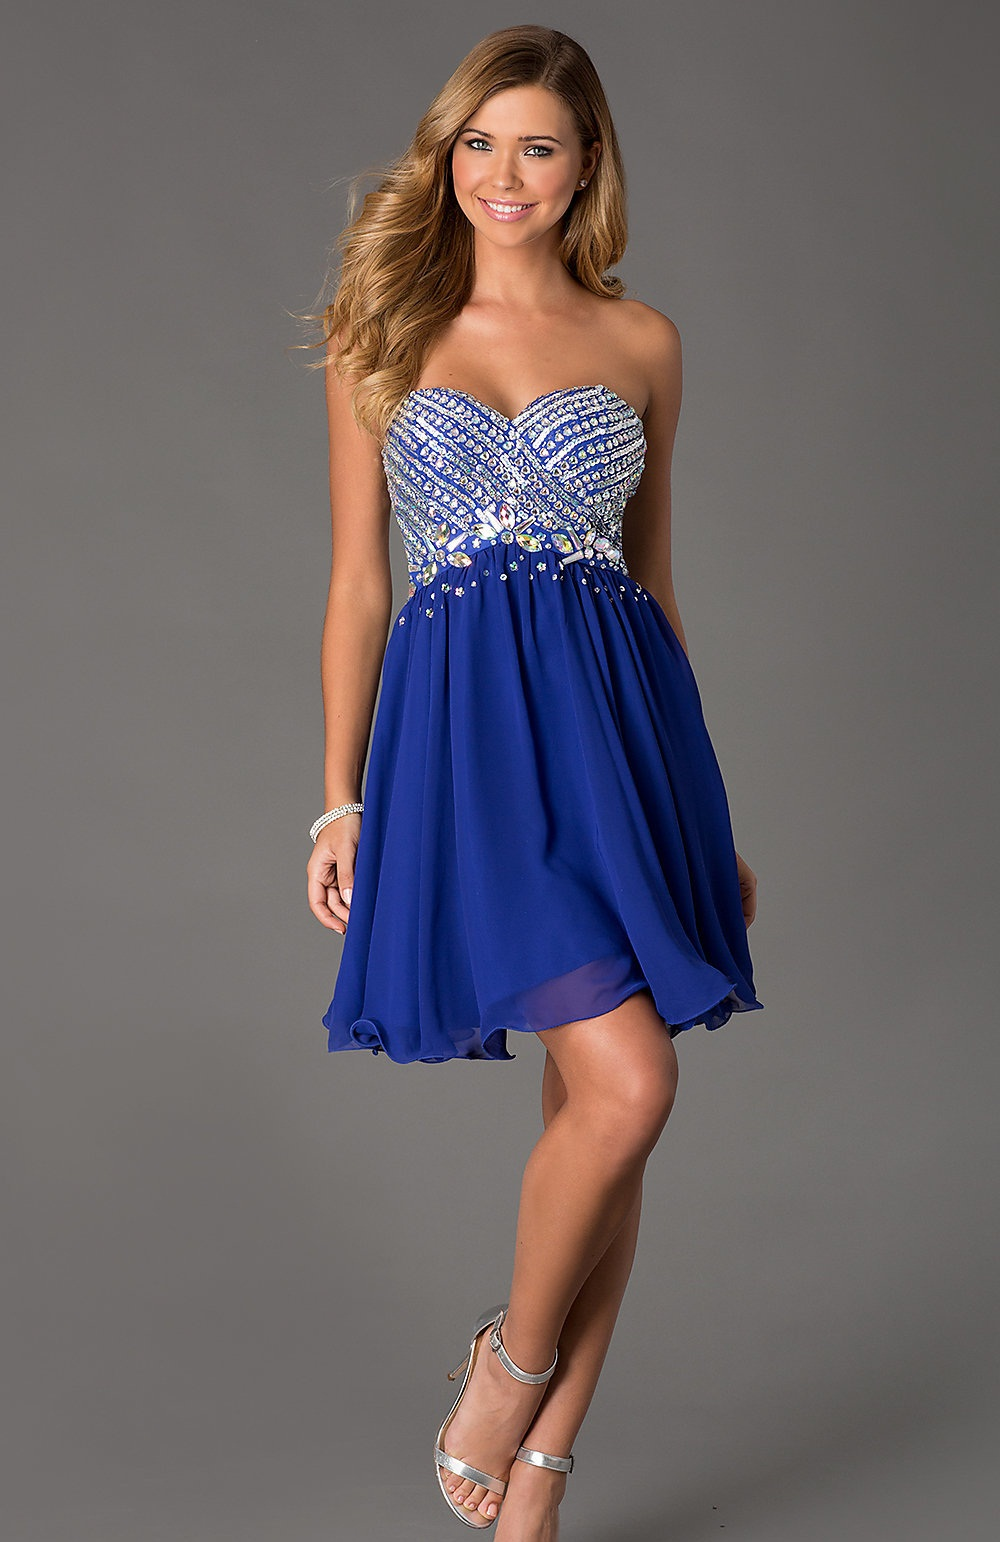 Quinceanera Outfits Collections